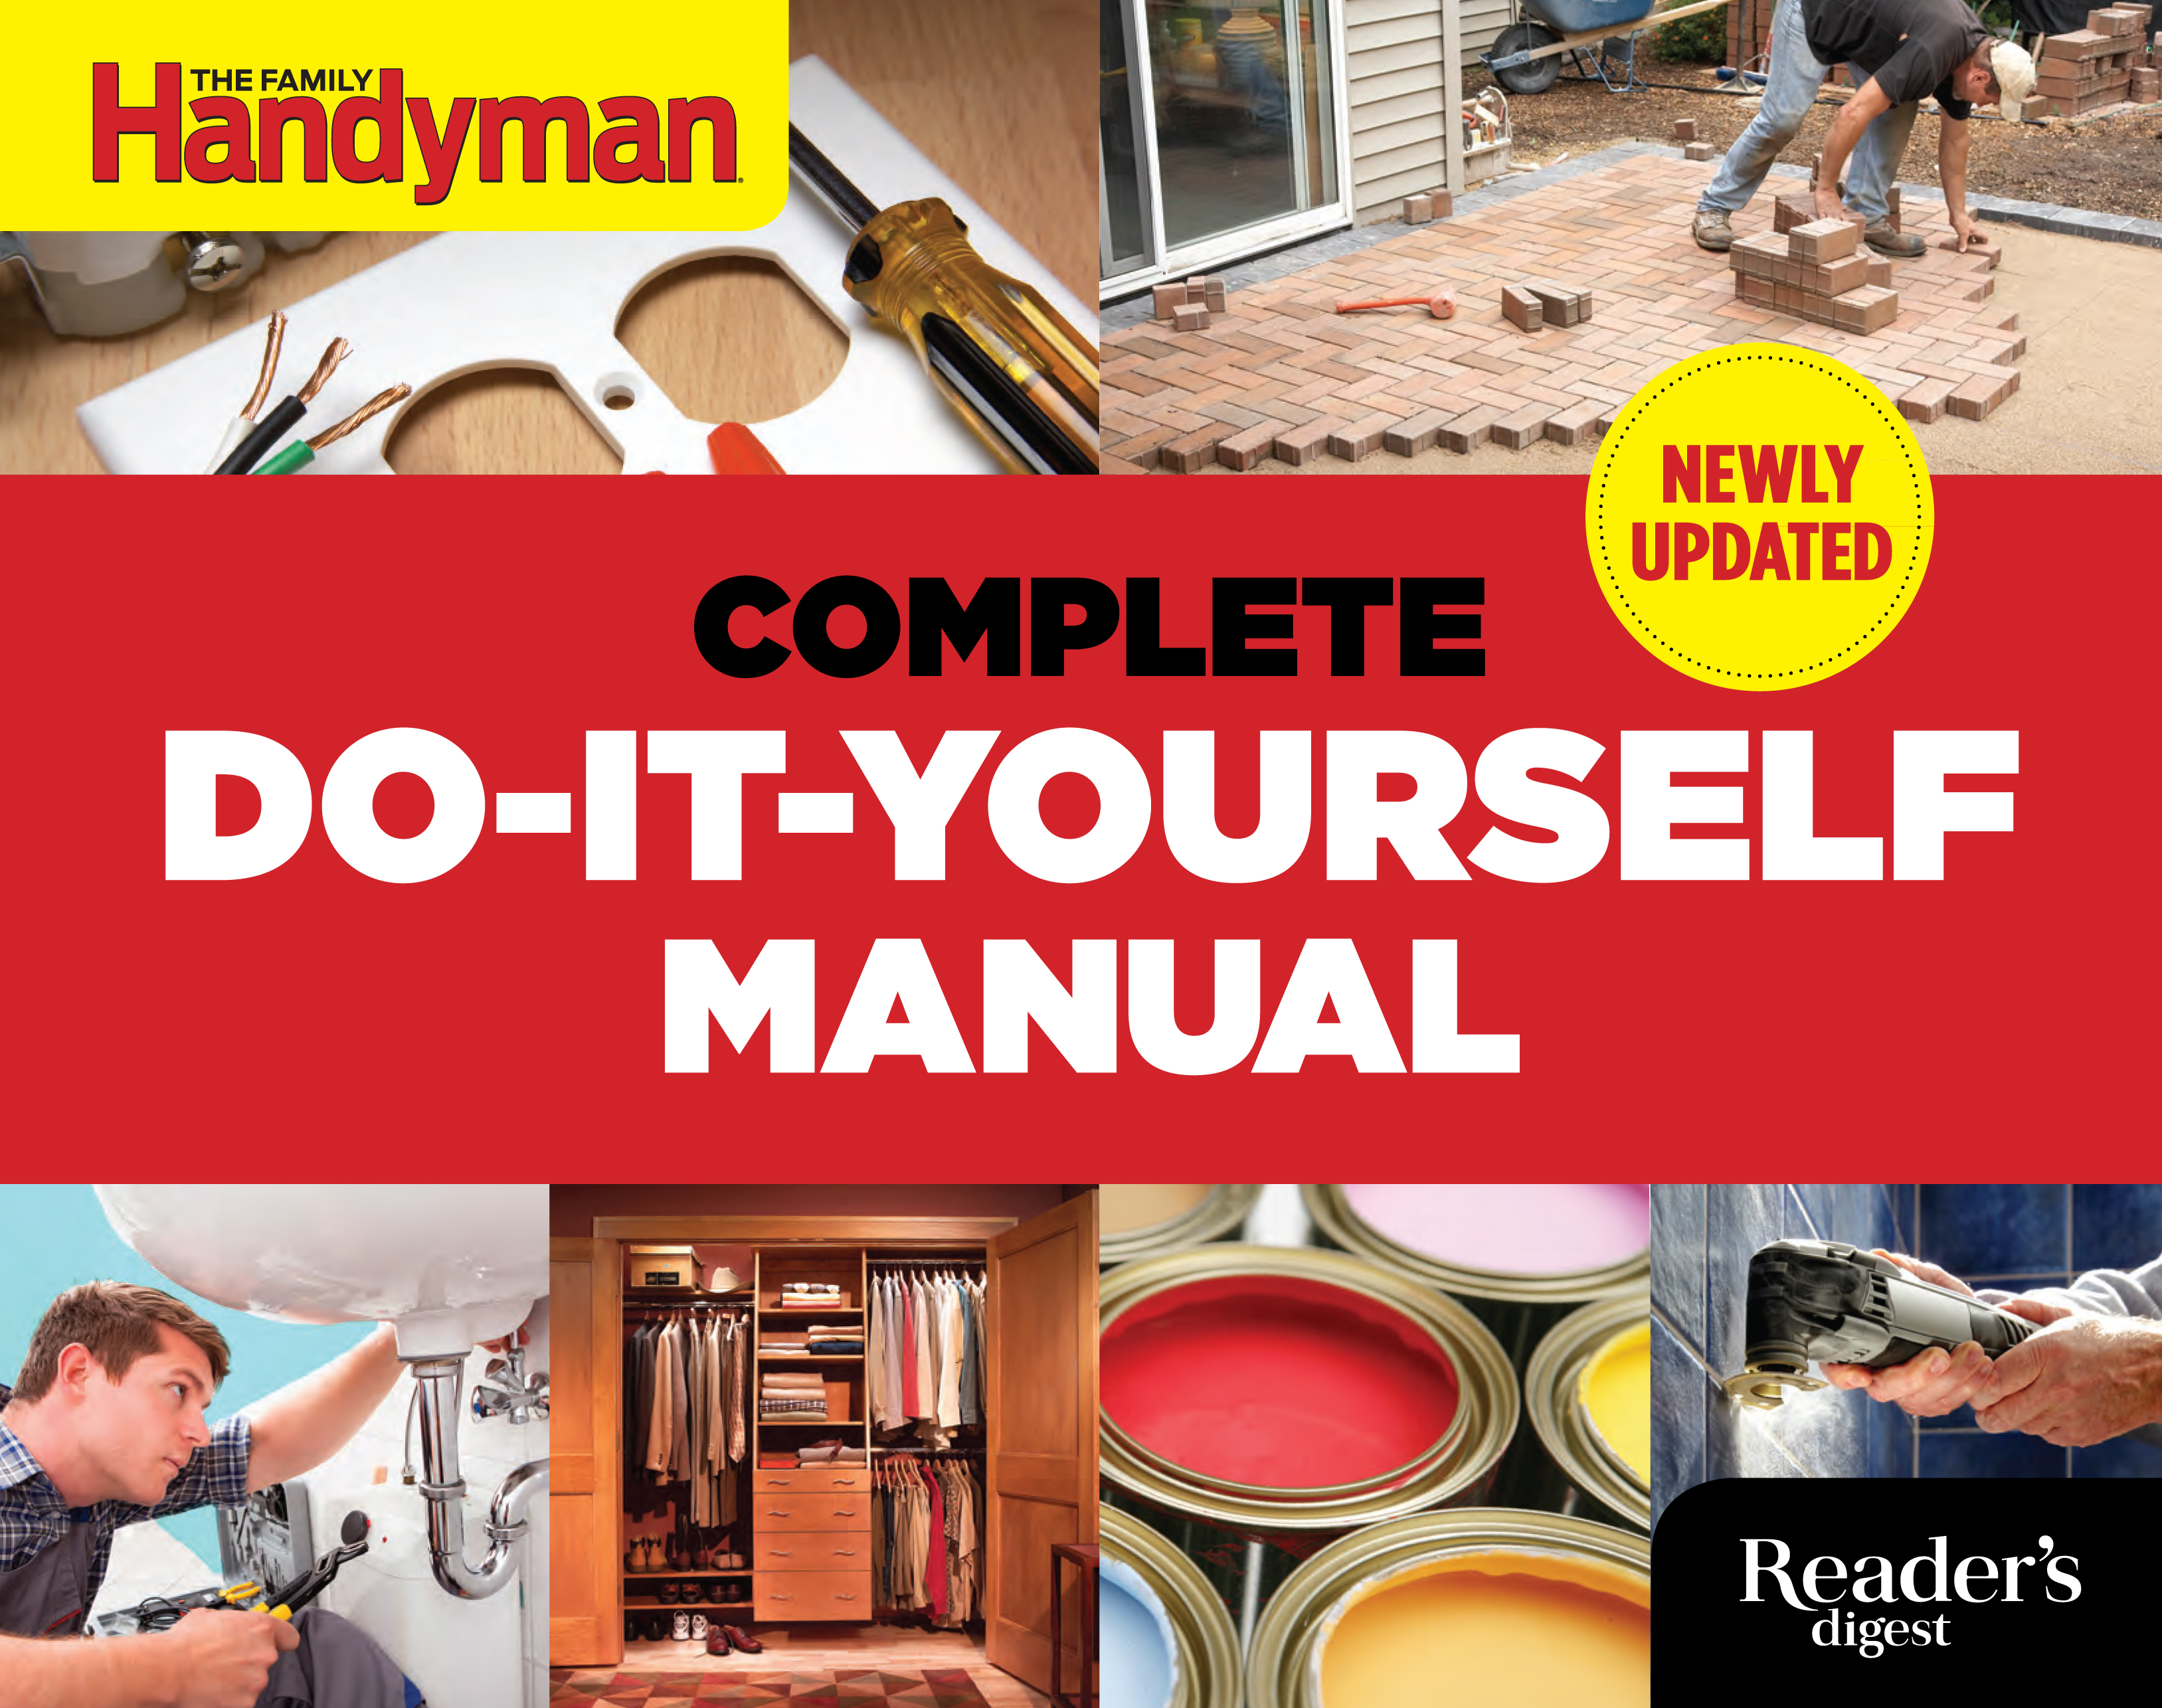 The complete do it yourself manual newly updated book by editors 9781621452010 hr the complete do it yourself solutioingenieria Gallery